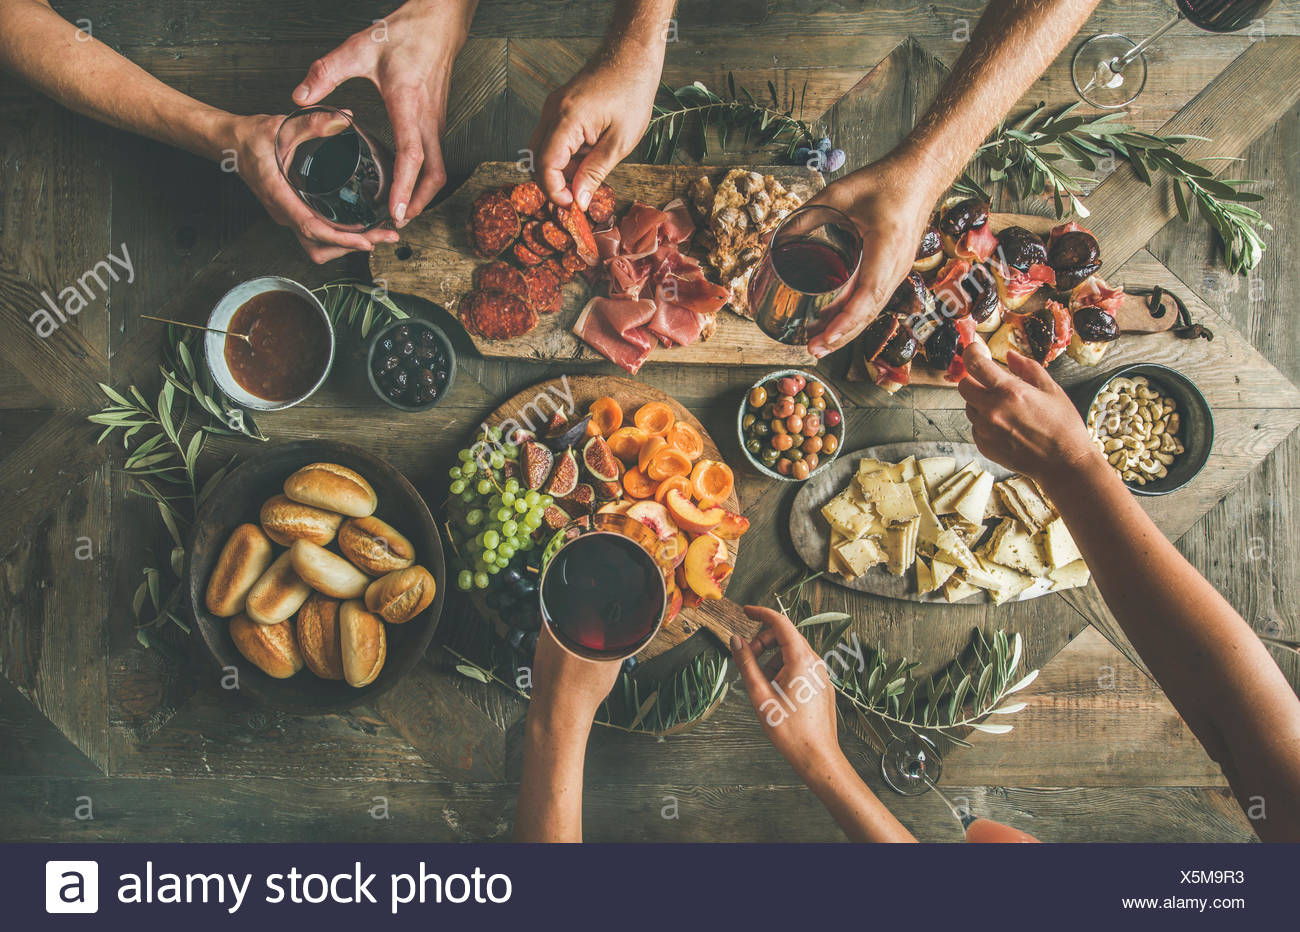 Flat-lay of friends company eating and drinking together. Top view of group of people having party, gathering, celebration or dinner together sitting  Stock Photo